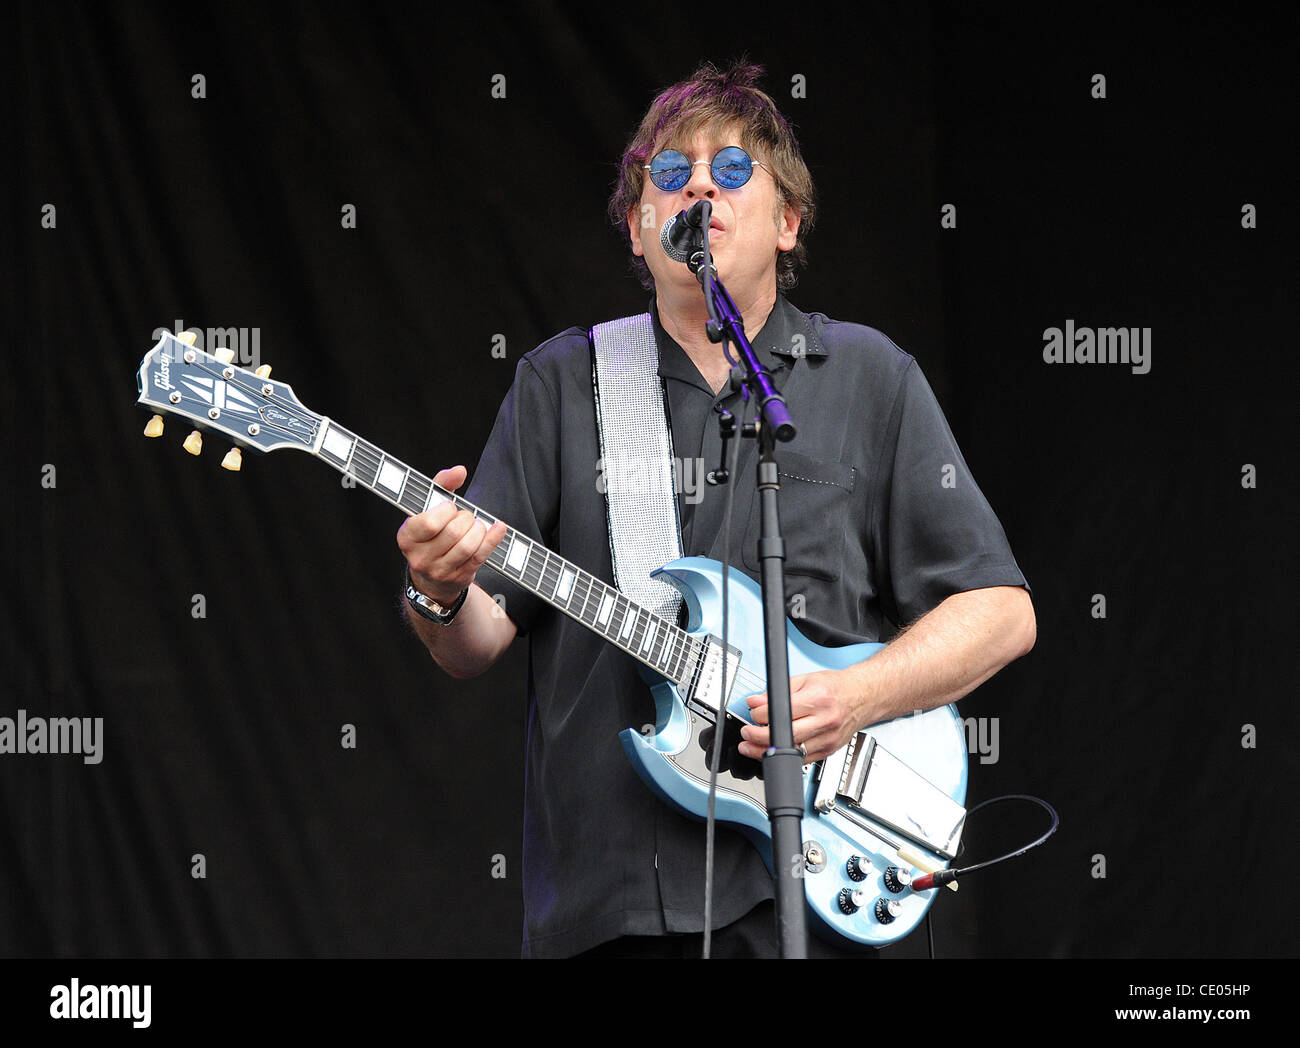 Aug 7, 2011 - Chicago, Illinois; USA - Guitarist ELLIOT EASTON of The Cars performs live as part of the 20th Anniversary - Stock Image